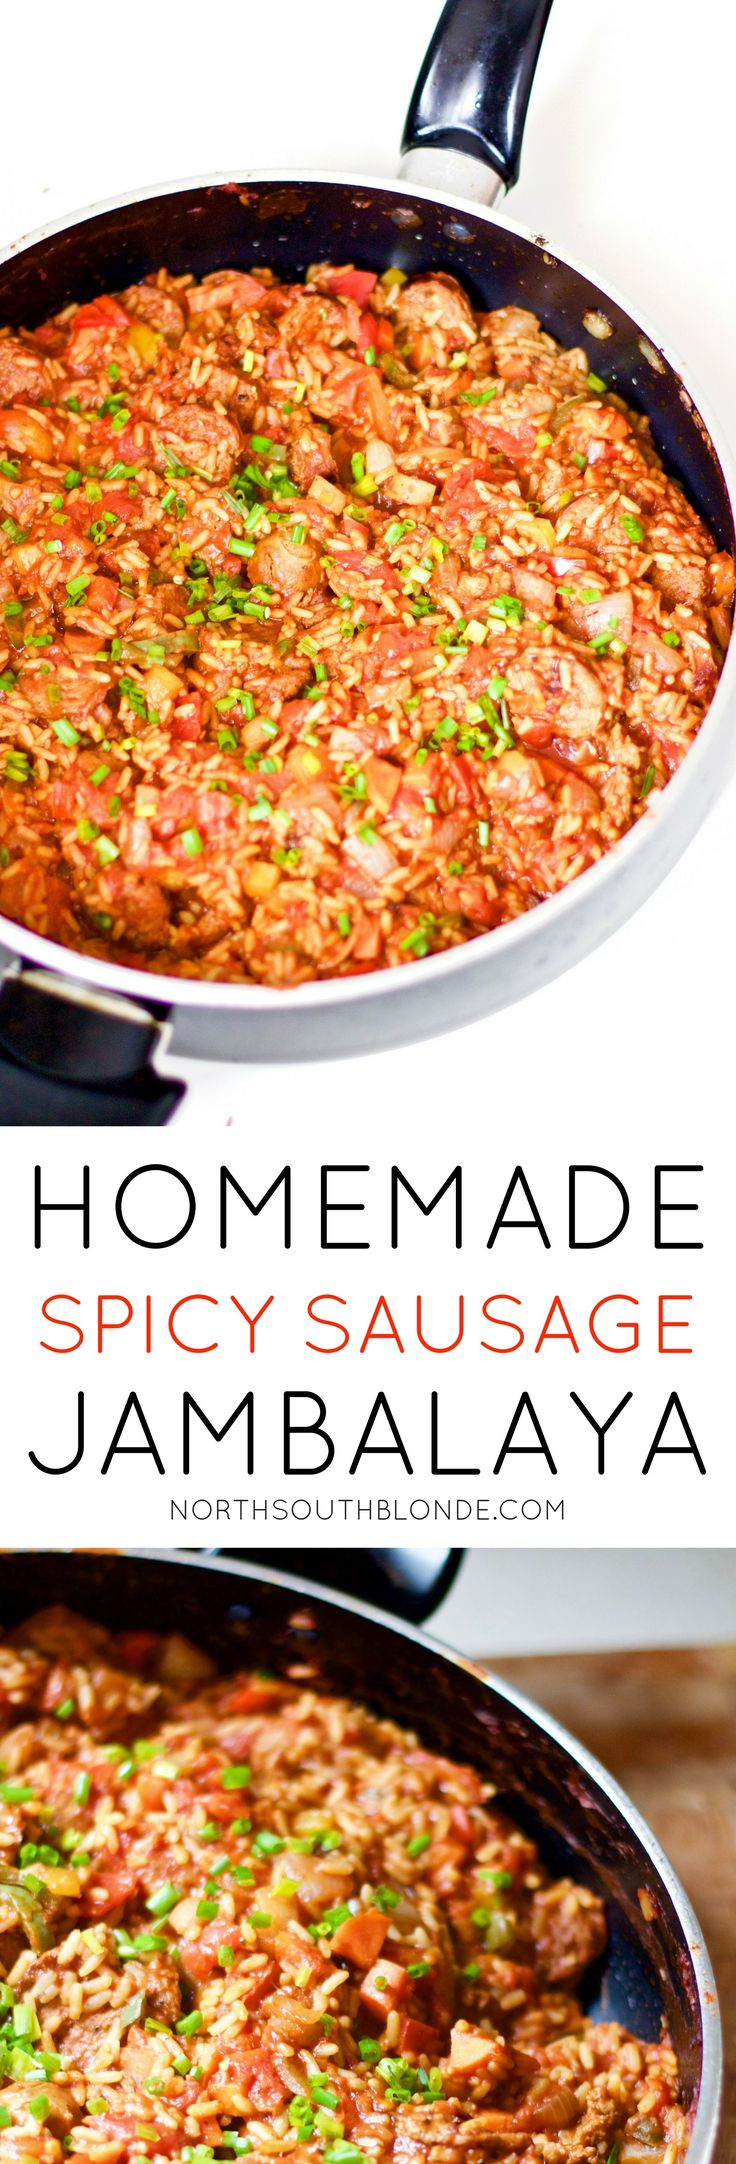 An easy one pot dinner recipe that's perfect for spicy food lovers. Homemade spicy sausage jambalaya is savoury and mouth watering, easy to cook up and is a hearty, wholesome, and gluten-free meal. Dinner | One-Pot | Stew | Southern | Authentic | Lunch | Entertain | Sauce | Healthy | Spice | From Scratch | Meal Ideas | Cooking | Delicious | Hot | Spicy | Hearty | Fibre | Gluten-Free | Dairy-Free | Cajun | SouthWest | Tasty | Family Friendly |